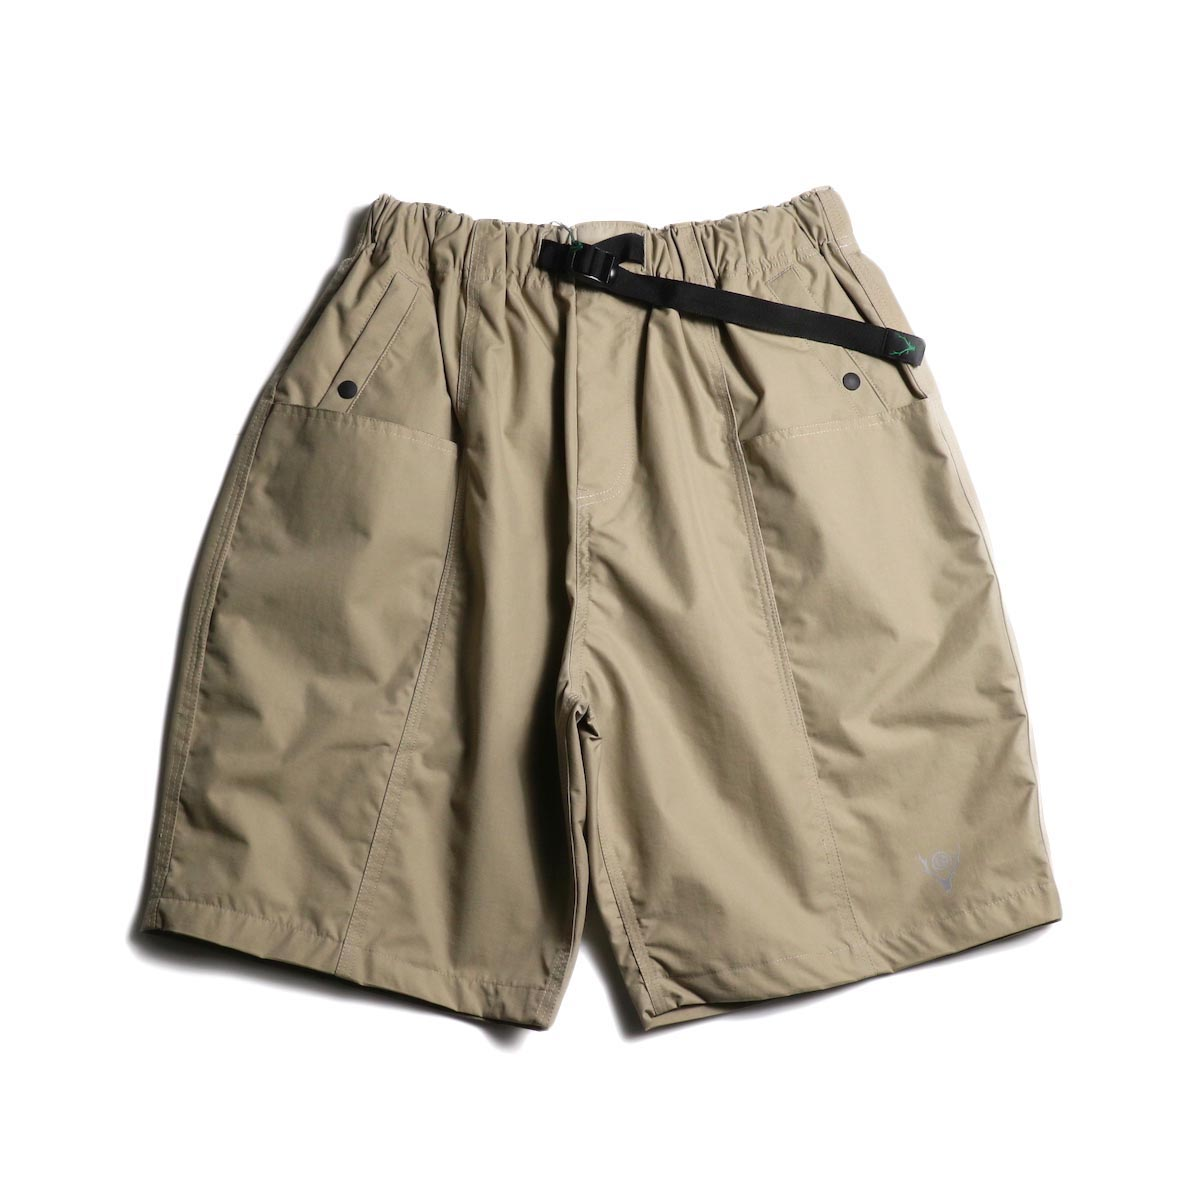 SOUTH2 WEST8 / Belted Center Seam Short -Nylon Tussore (Beige)正面